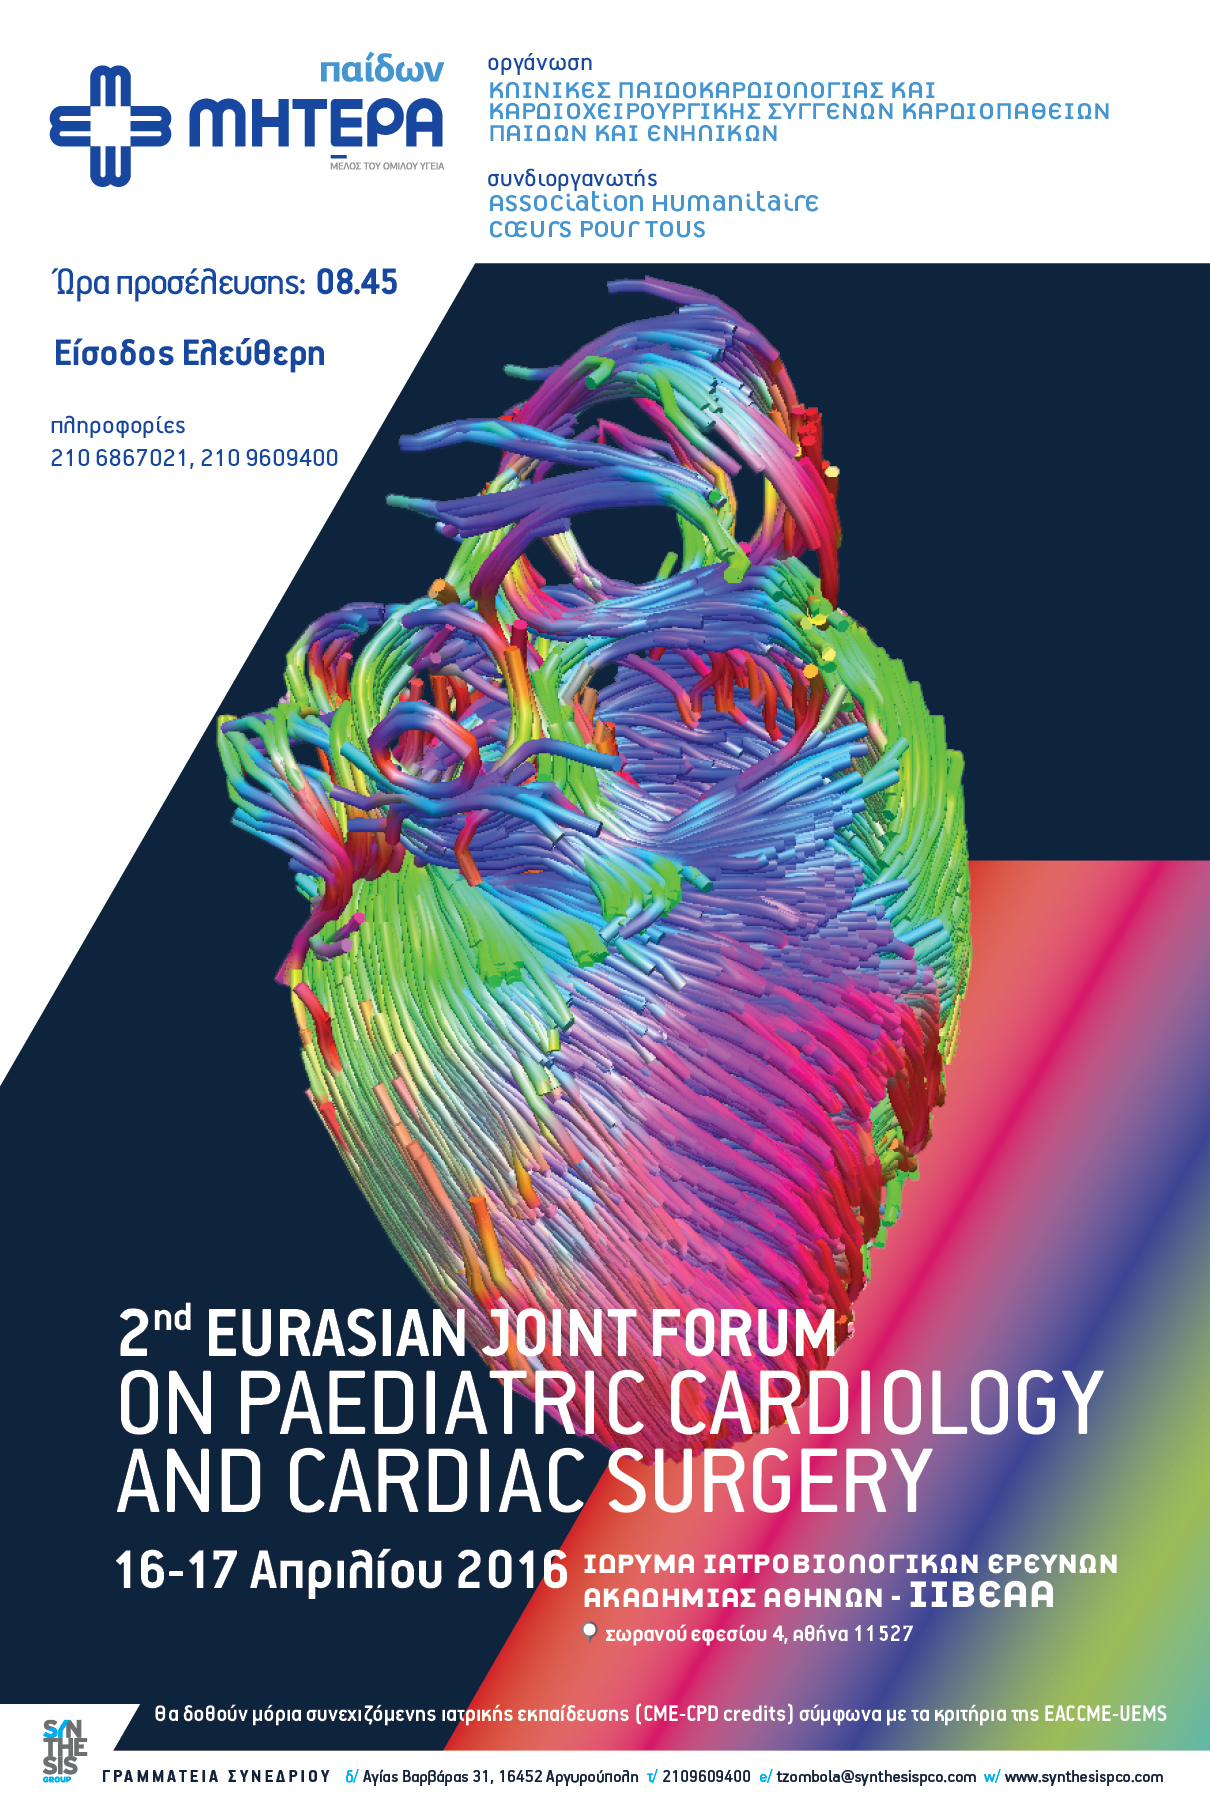 2nd Eurasian Joint Forum on Paediatric Cardiology and Cardiac Surgery